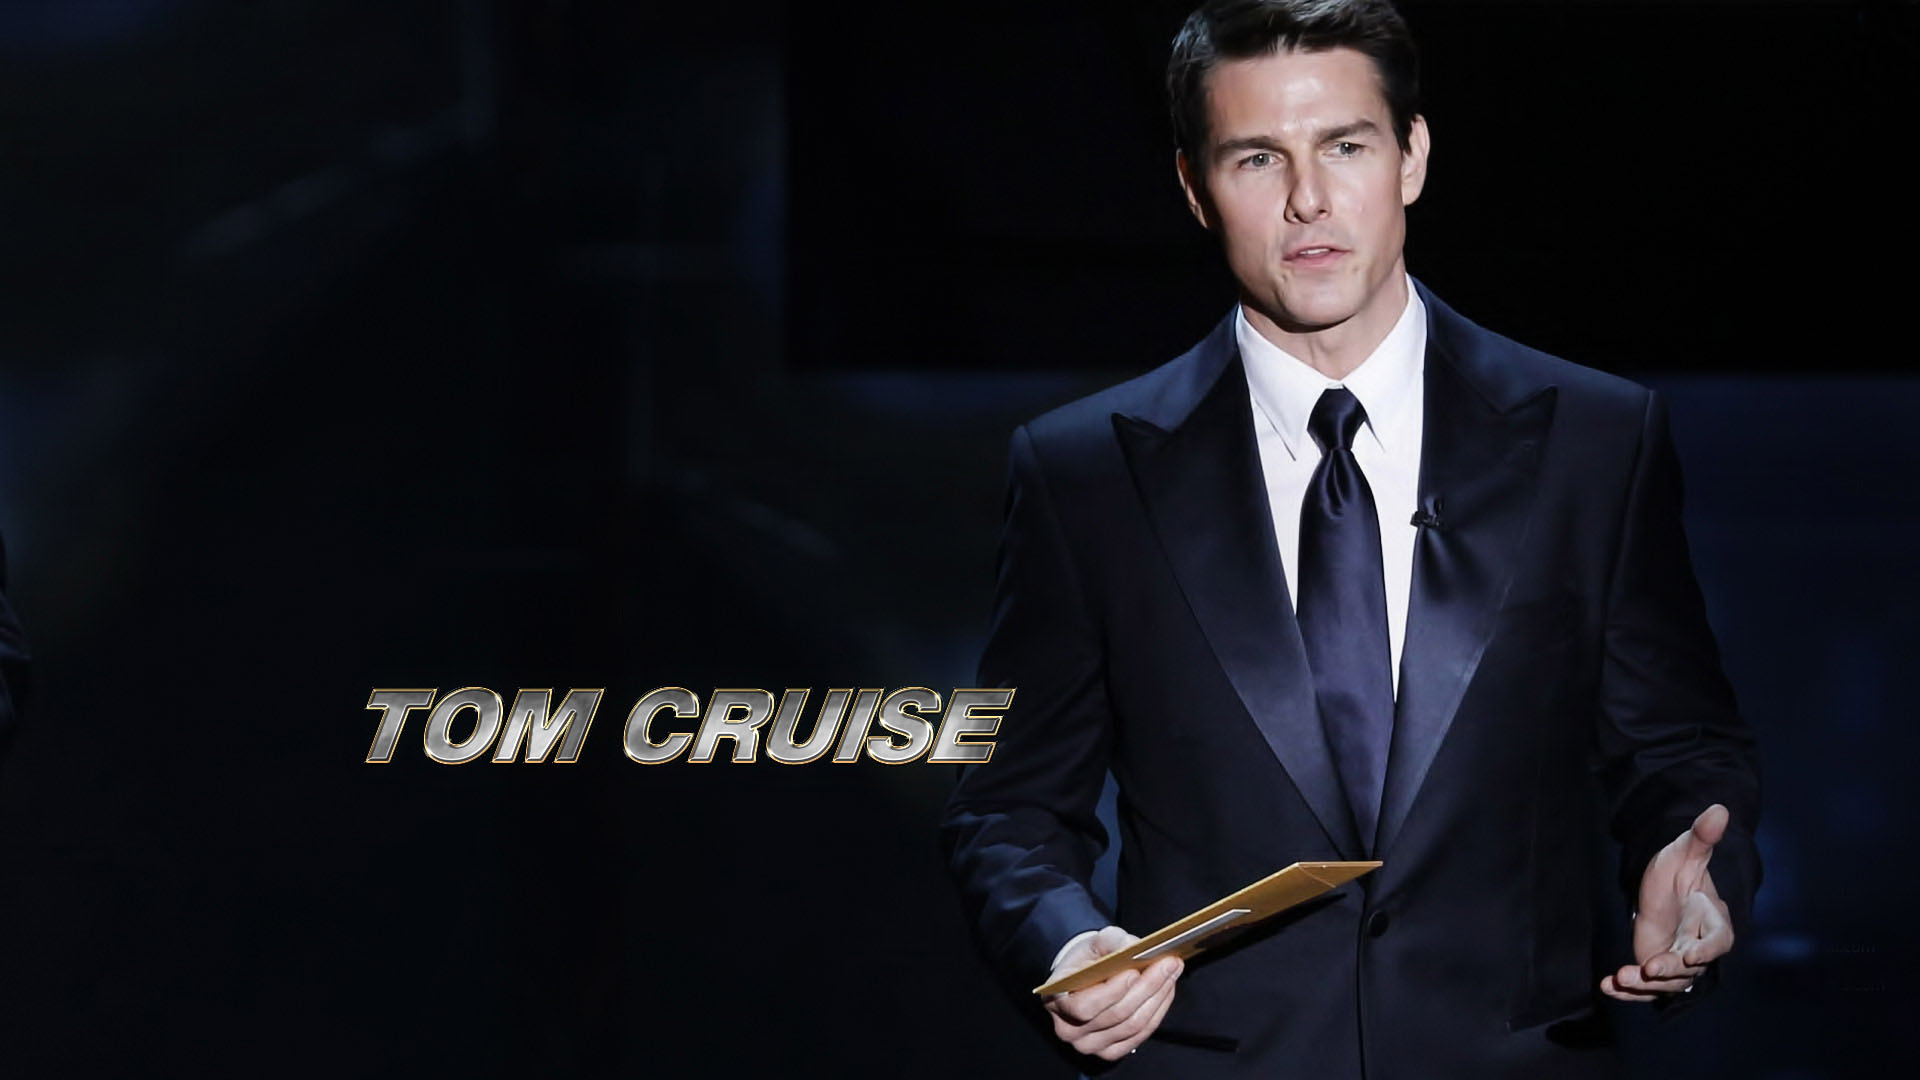 Laptop Tom cruise Wallpapers HD Desktop Backgrounds 1920x1080 1920x1080